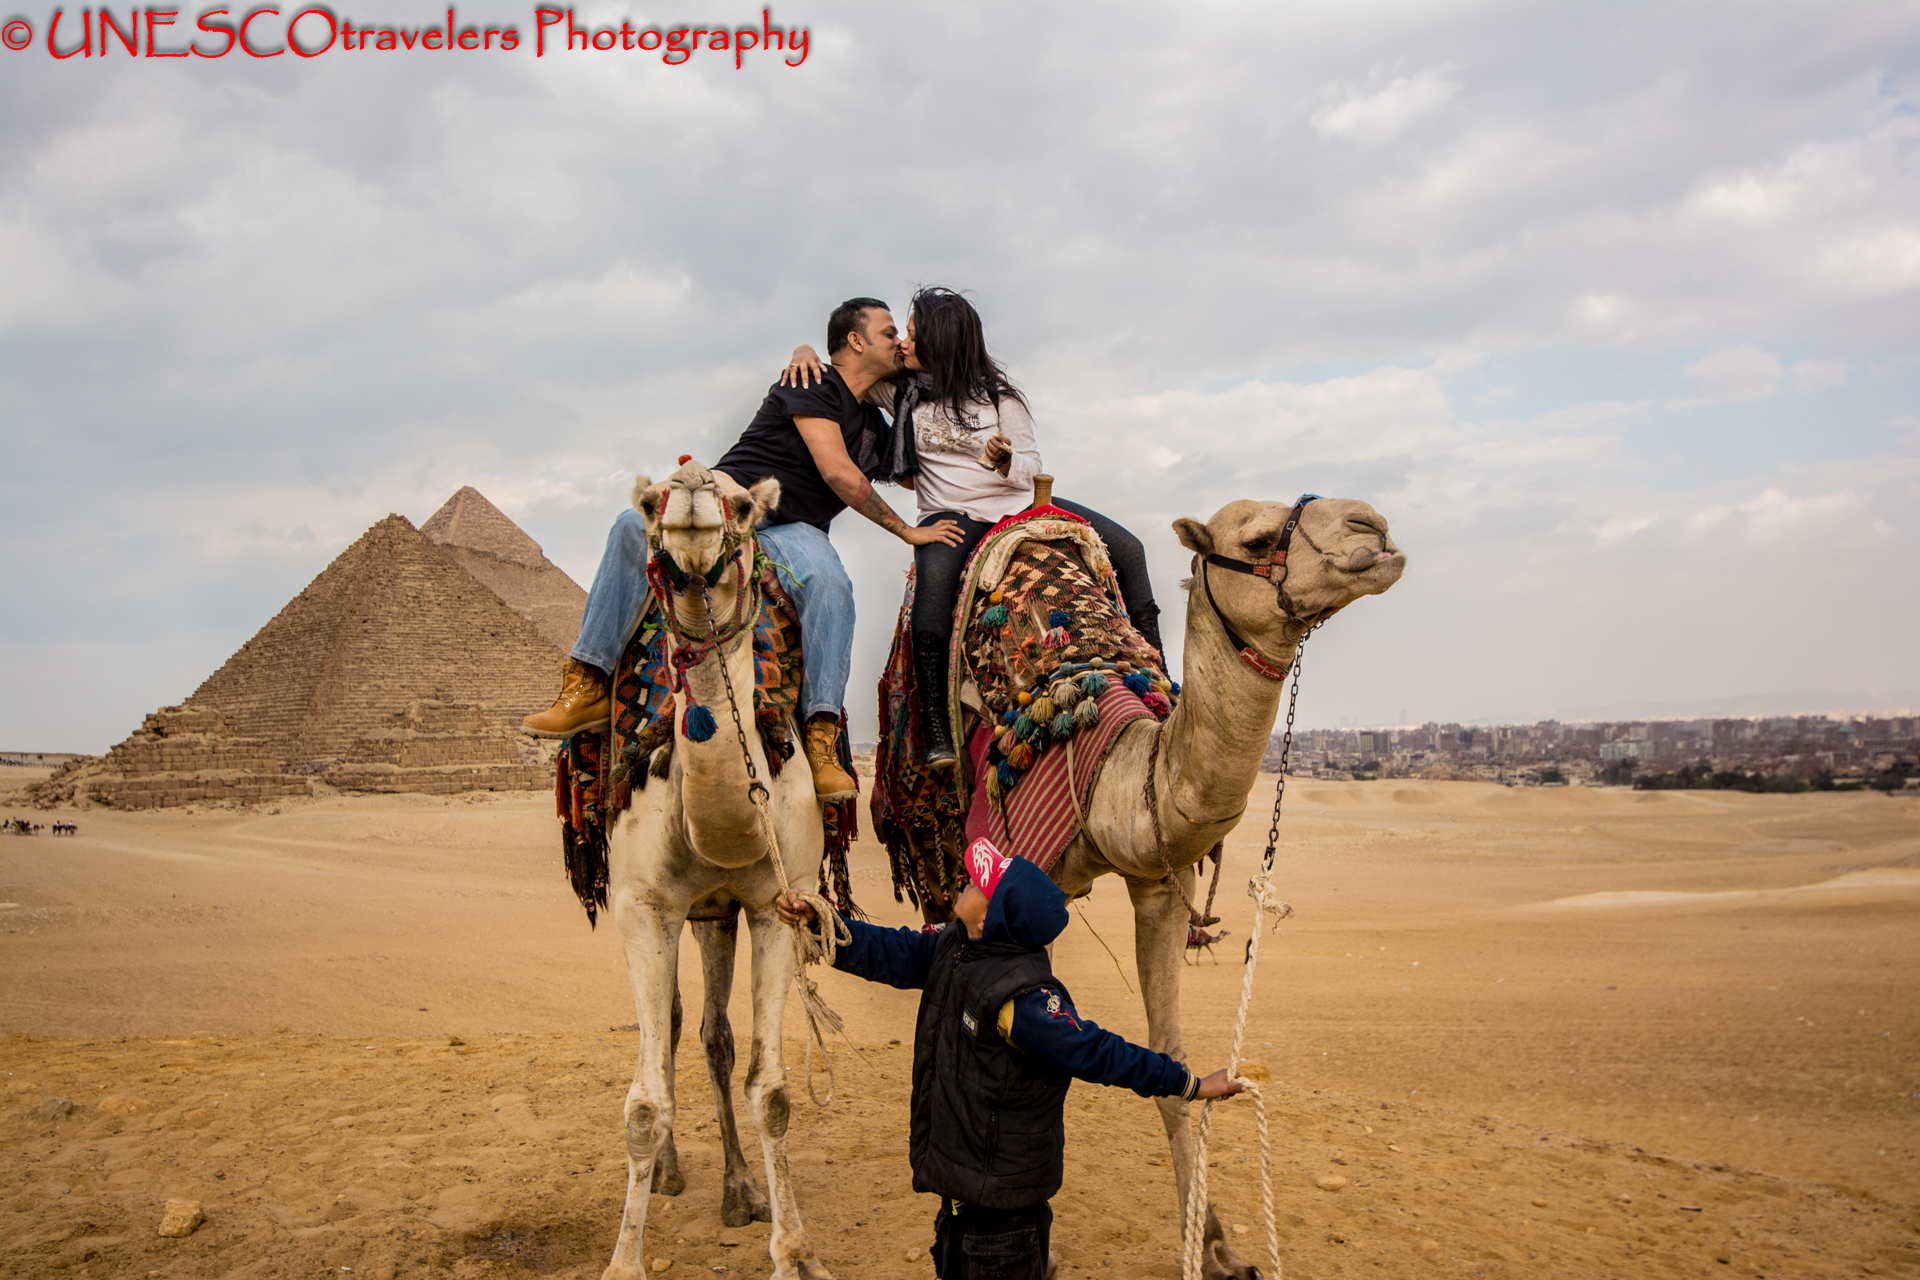 """The Pyramids of Giza @ Cairo, Egypt Memphis and its Necropolis -€"""" the Pyramid Fields from Giza to Dahshur - Egypt By UNESCOtravelers"""